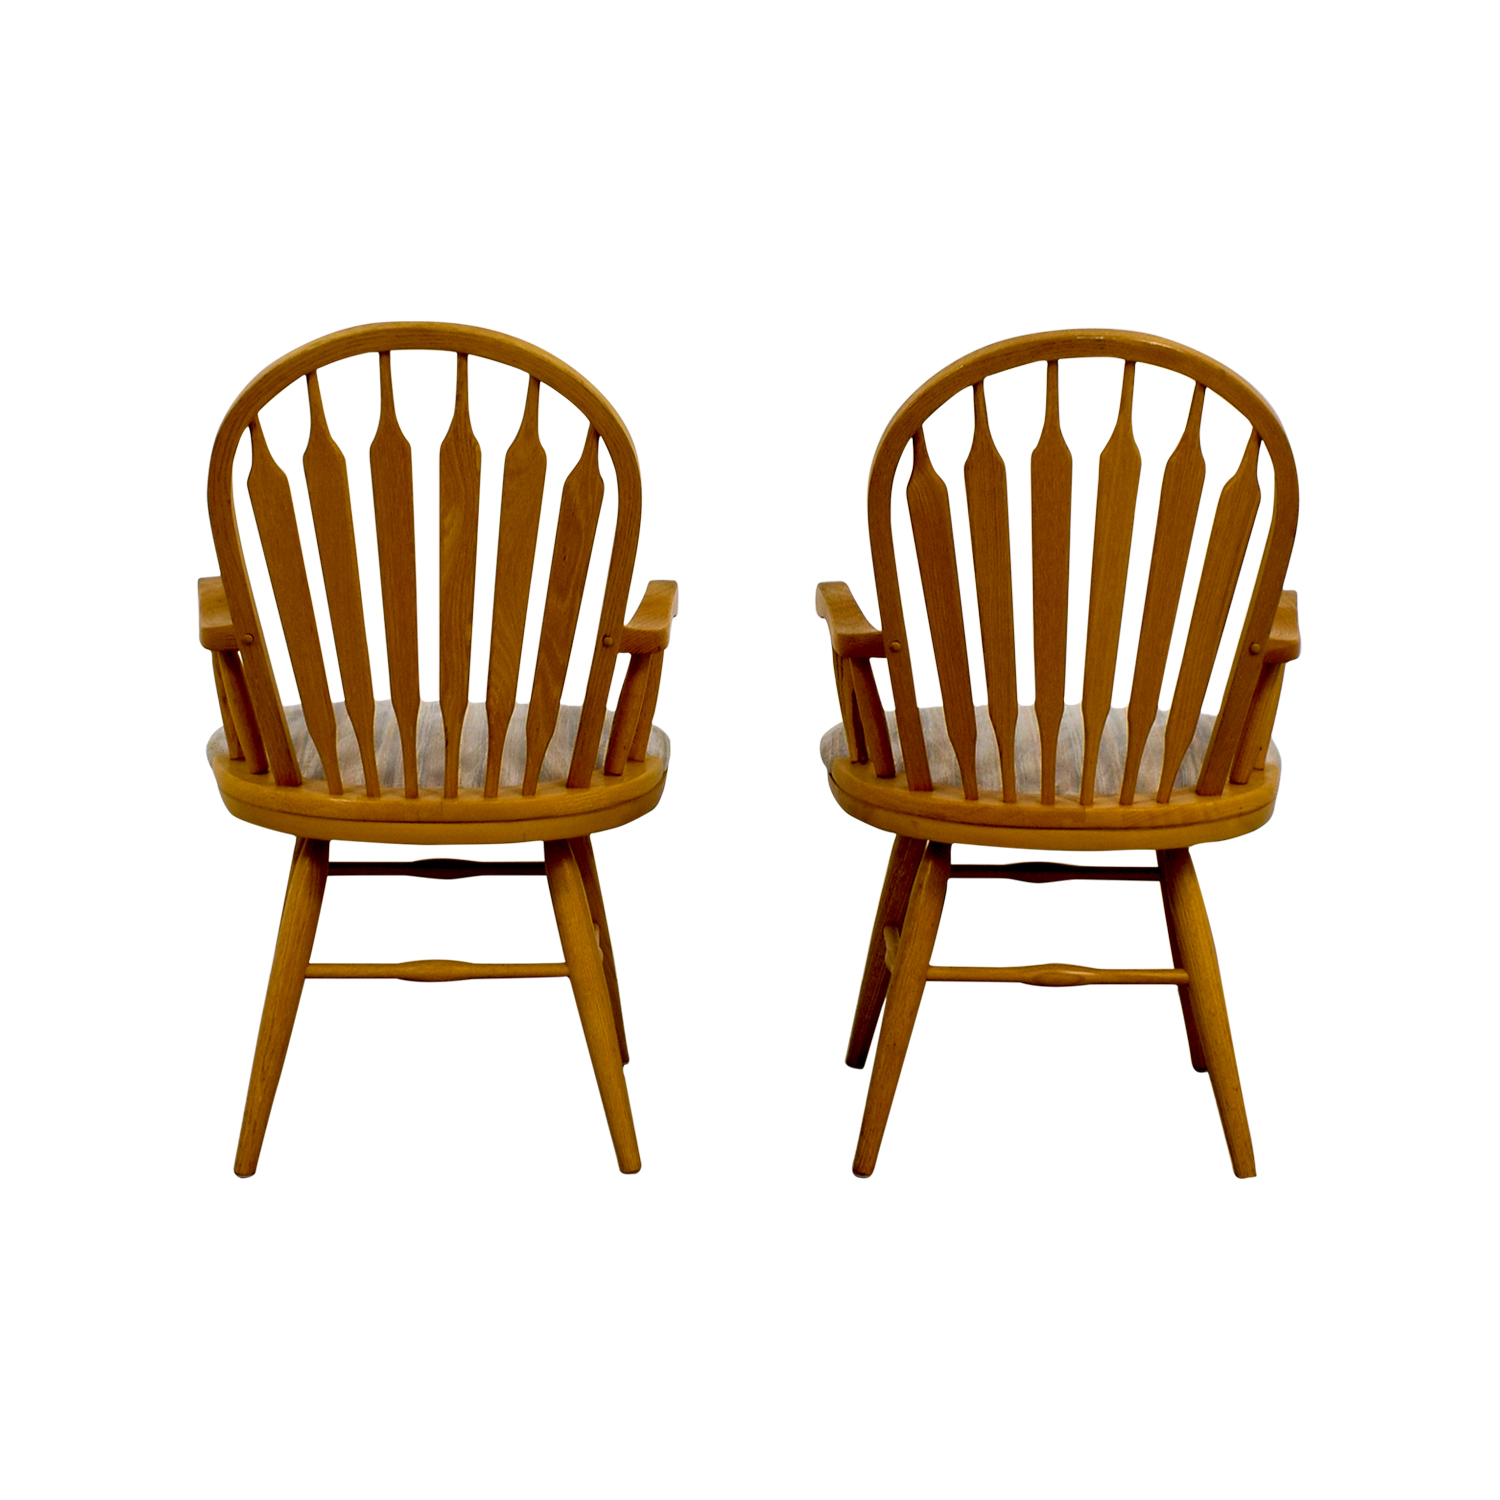 buy Dinaire Dinaire Wooden Arm Chairs online